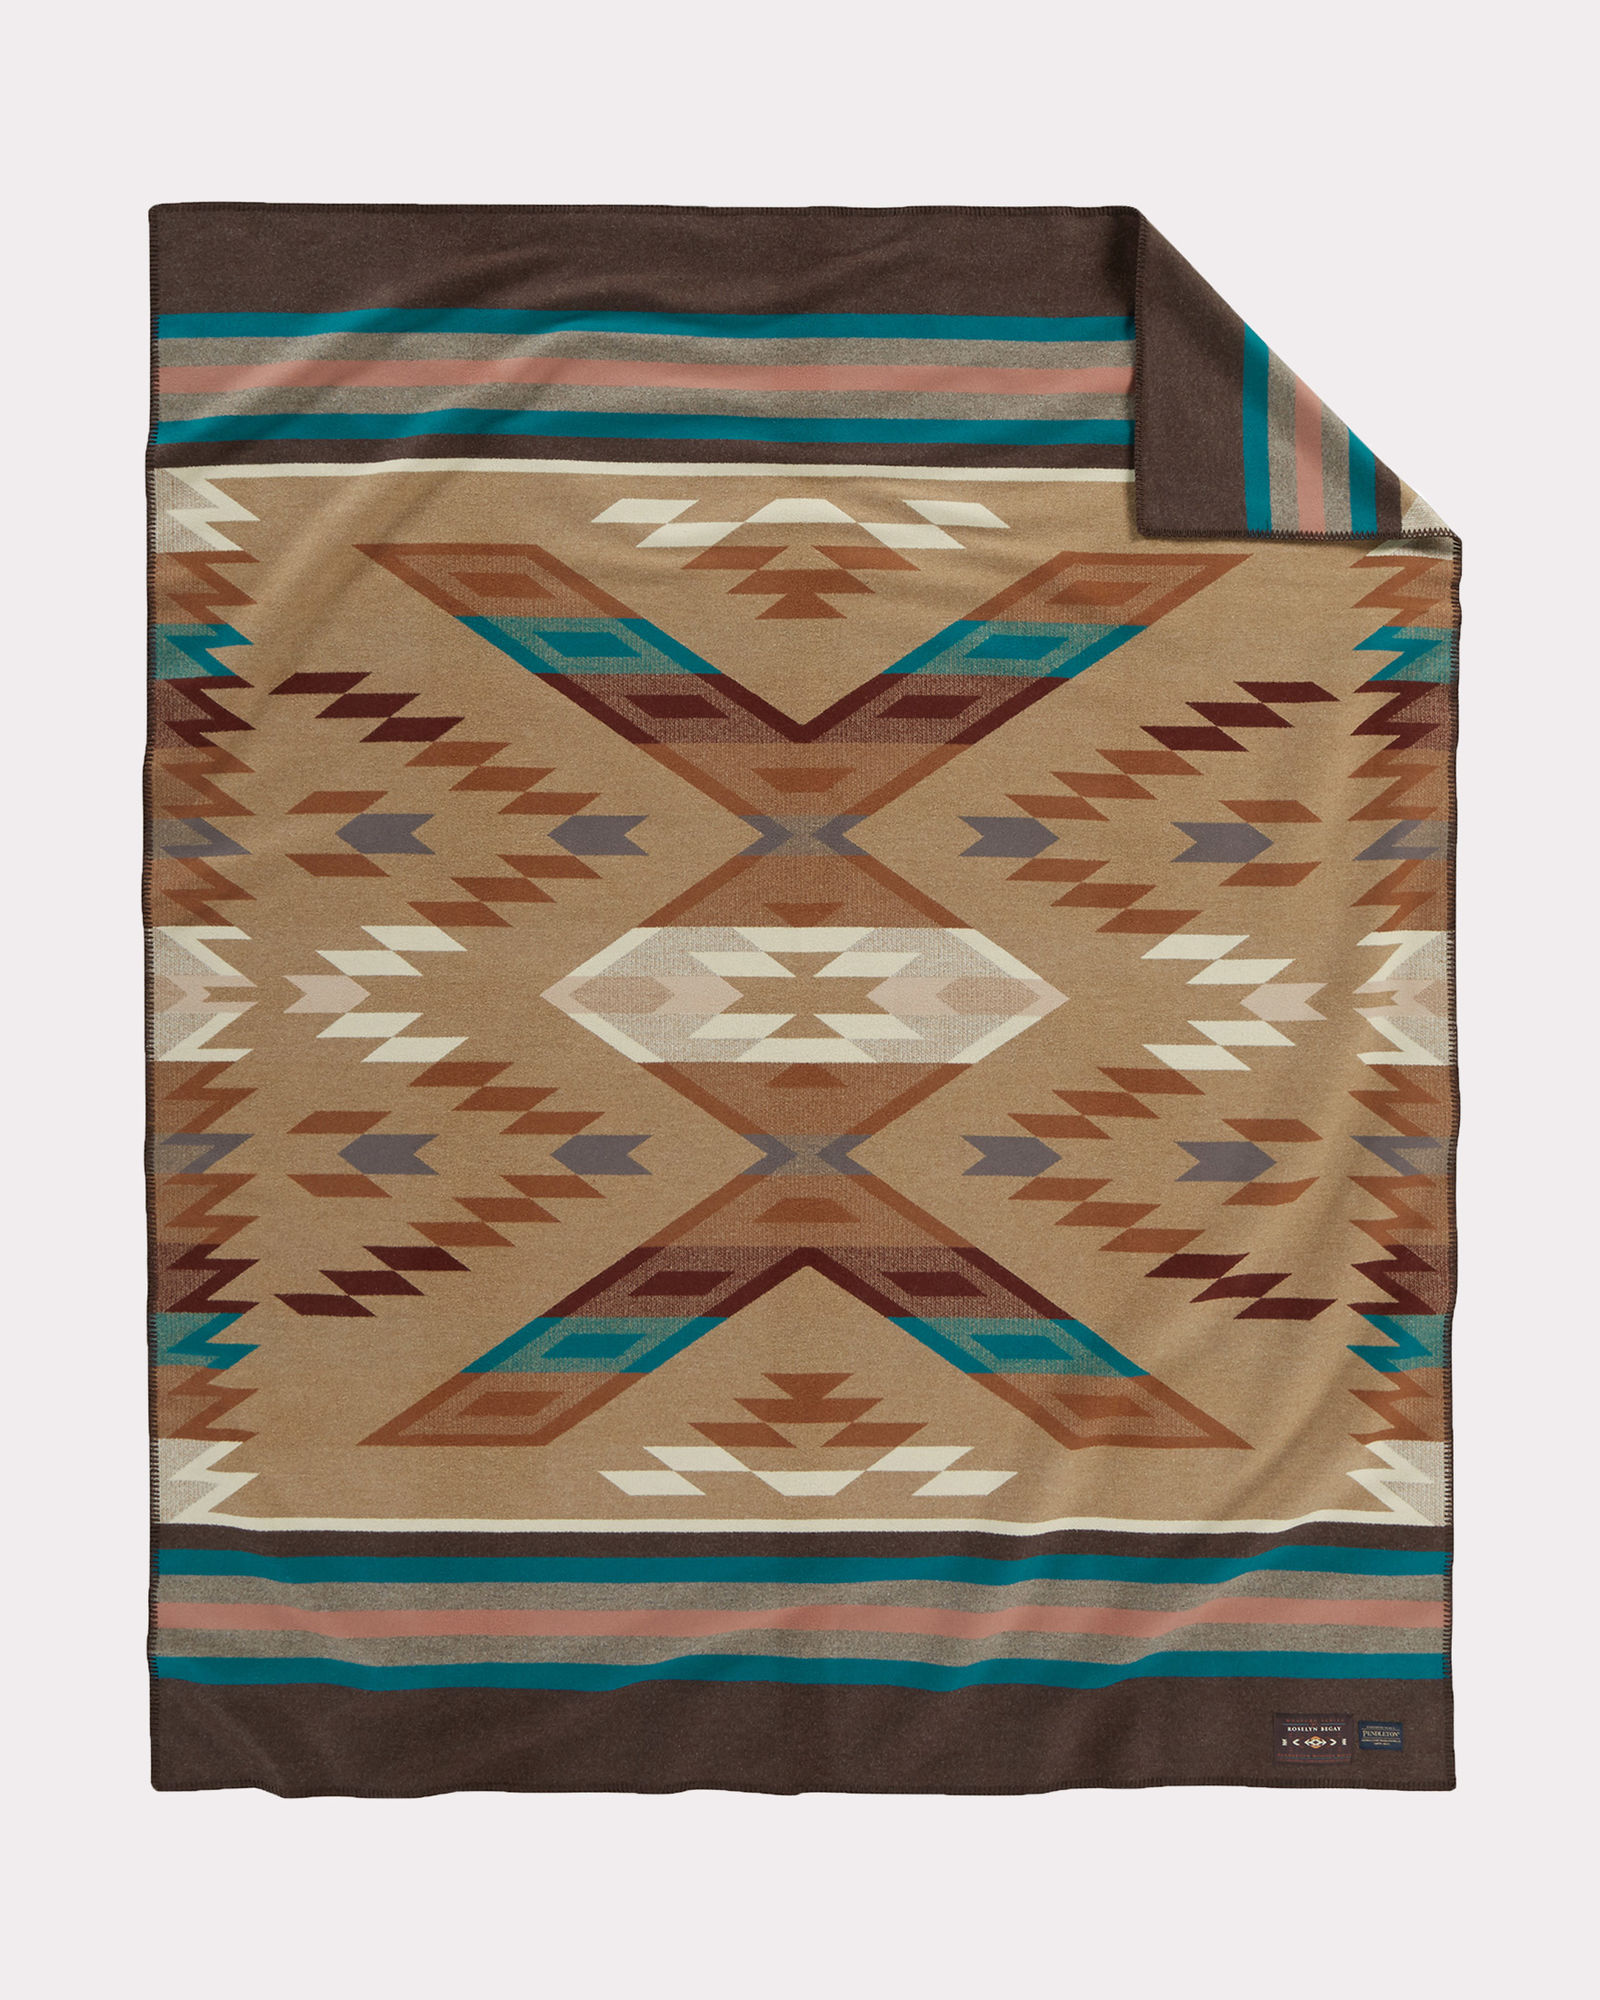 Pendleton Weavers Series blanket number one, from a work by Rosalyn Begay.